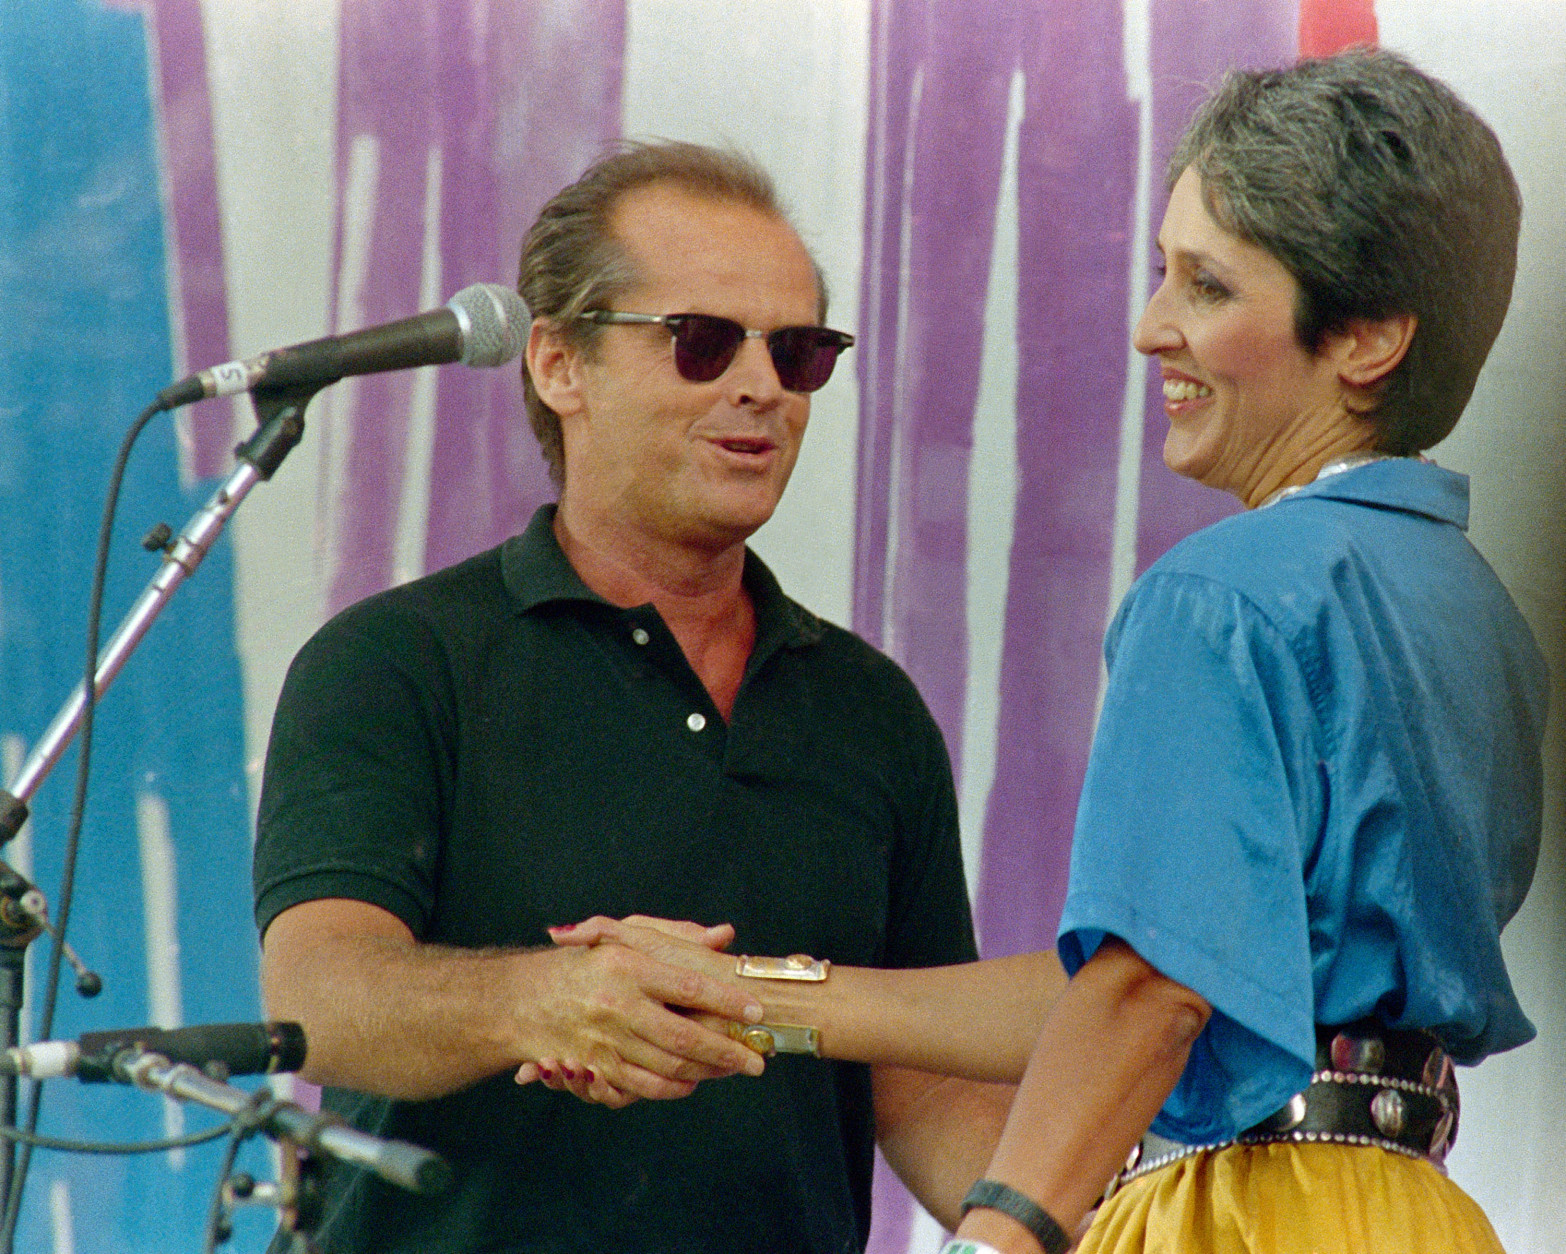 Actor Jack Nicholson, left, greets singer Joan Baez onstage, during the Live Aid concert for famine relief at JFK Stadium in Philadelphia, Pa. July 13, 1985.(AP Photo)